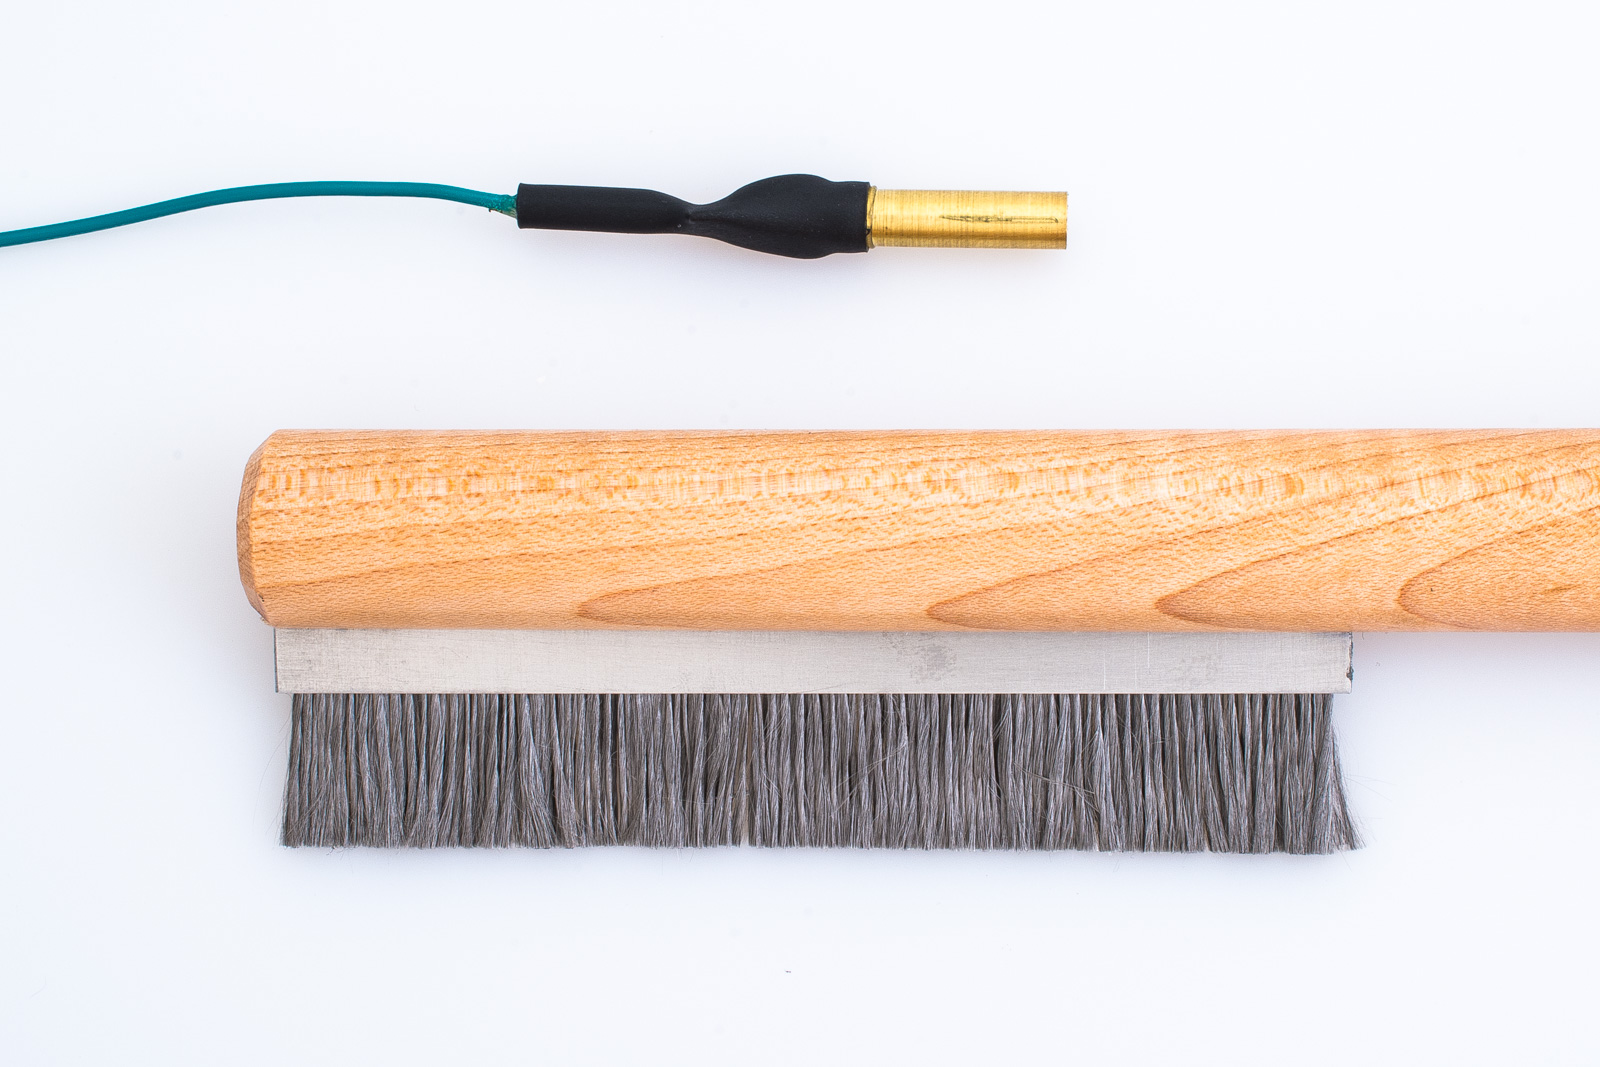 Static Draining Record Brush : with grounded soft steel bristles